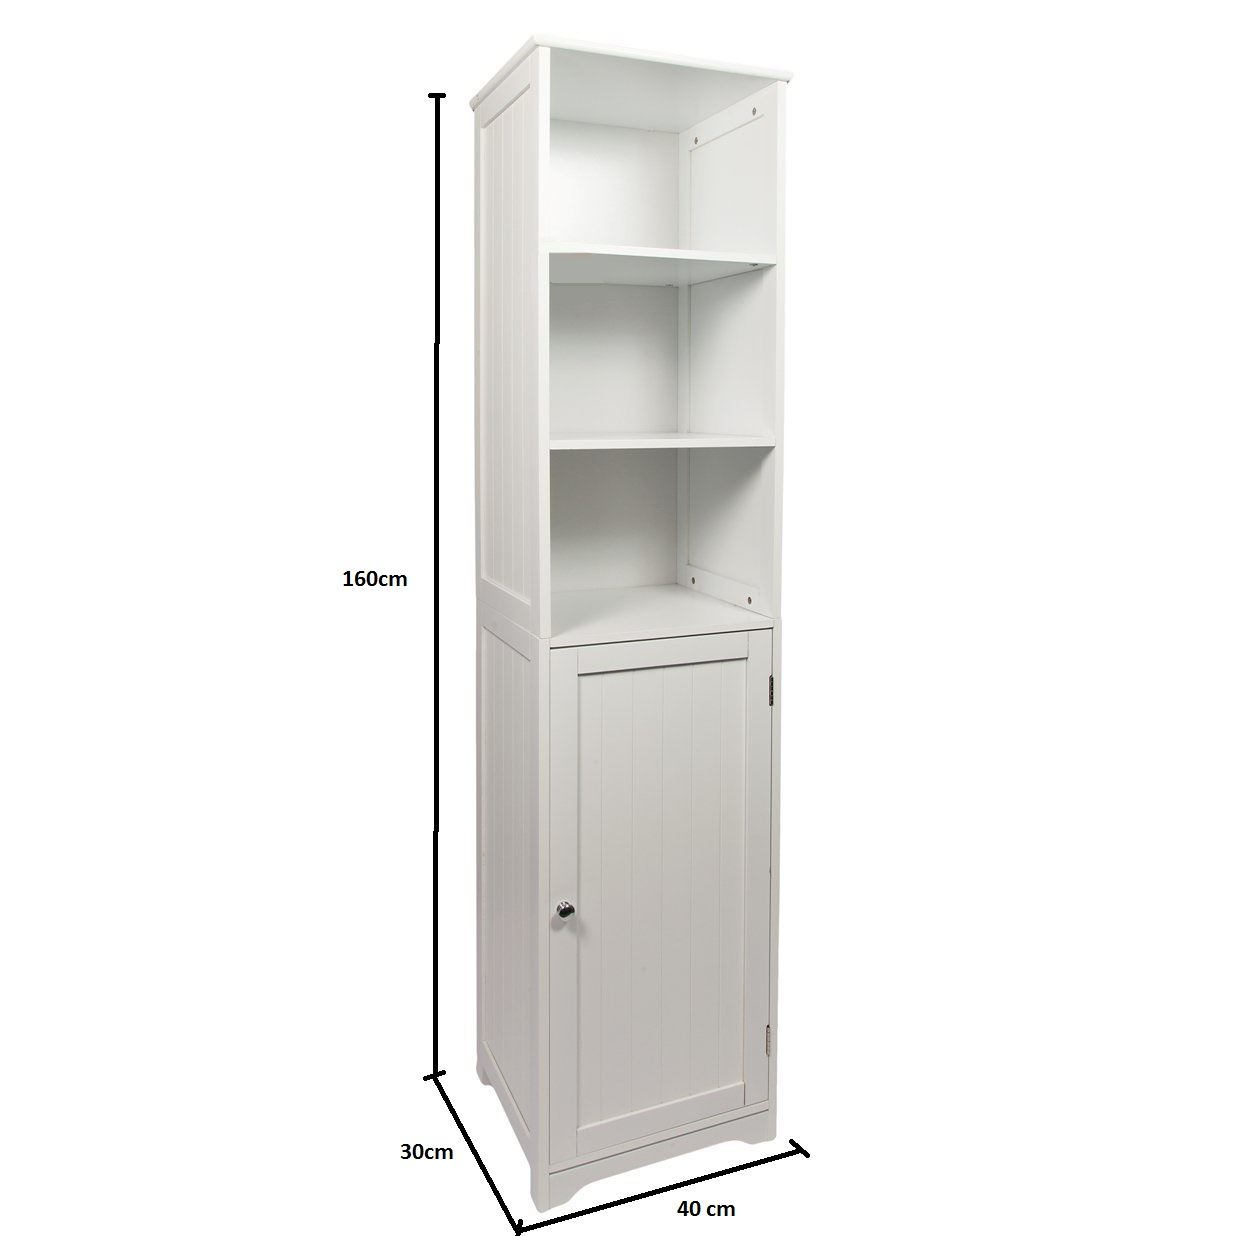 New White Wooden Bathroom Cabinet Shelf Furniture Cupboard